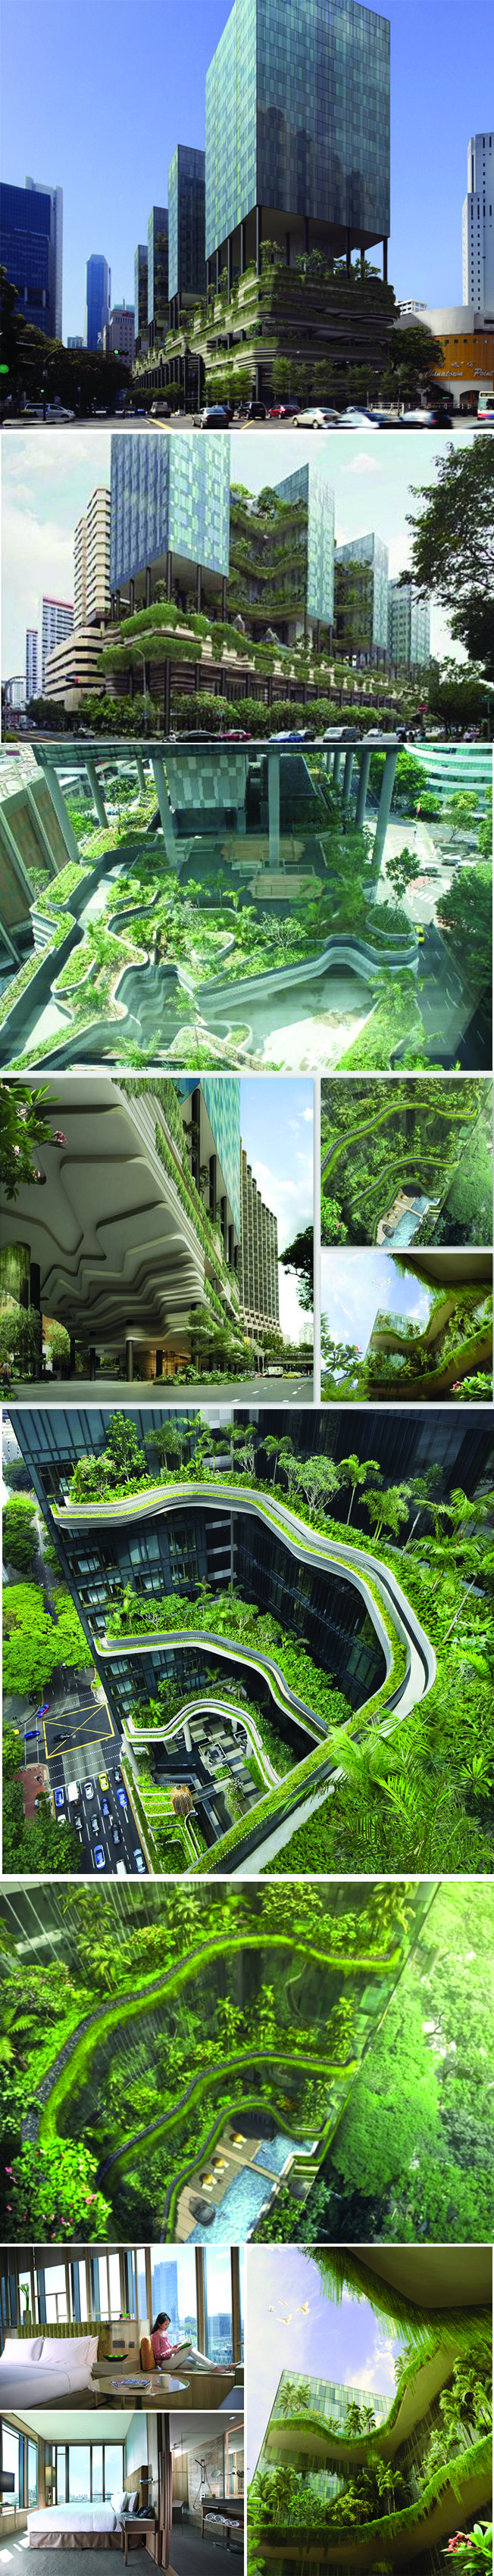 Parkroyal located in central Singapore 2013, by Woha Architect. Designed as a…